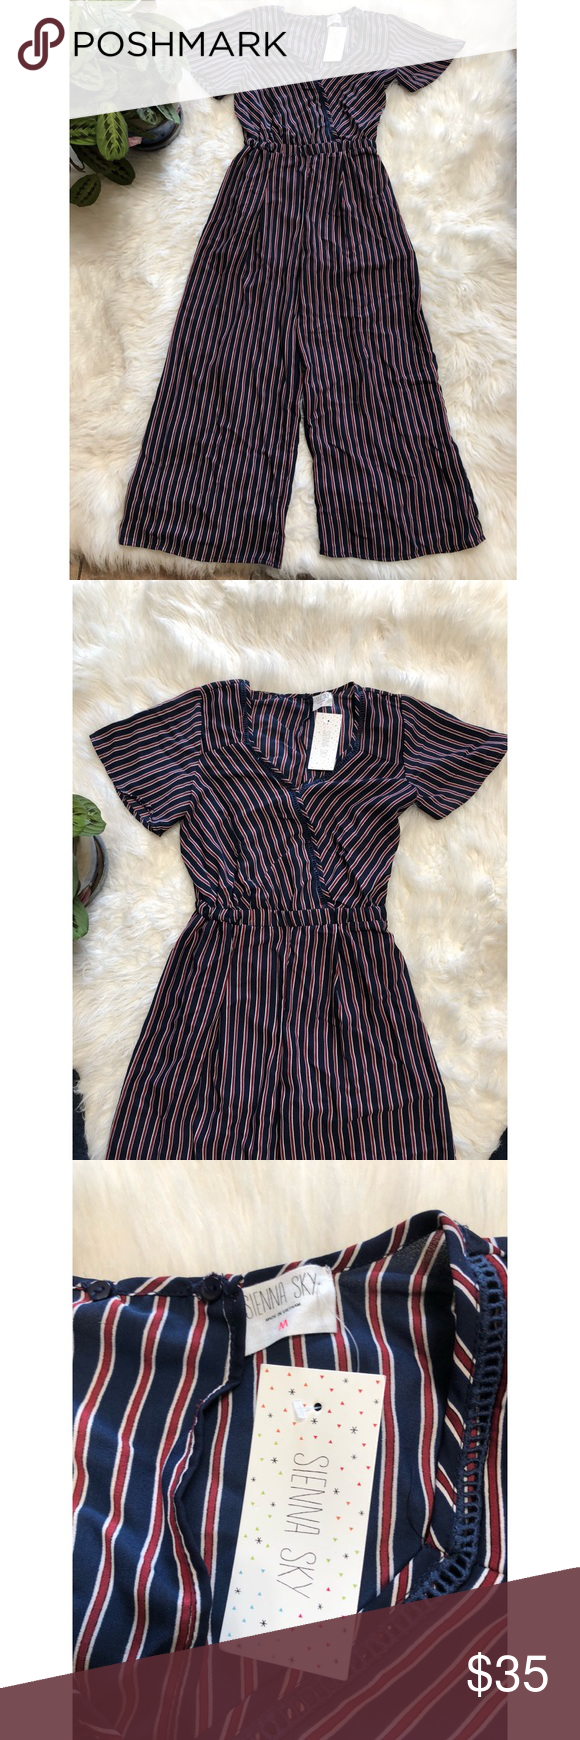 """c94a440e6439 Sienna Sky Jumpsuit Striped culotte style jumpsuit 52"""" from shoulder to hem  100% Polyester Lined Burgundy and navy blue stripes Sienna Sky Pants  Jumpsuits   ..."""